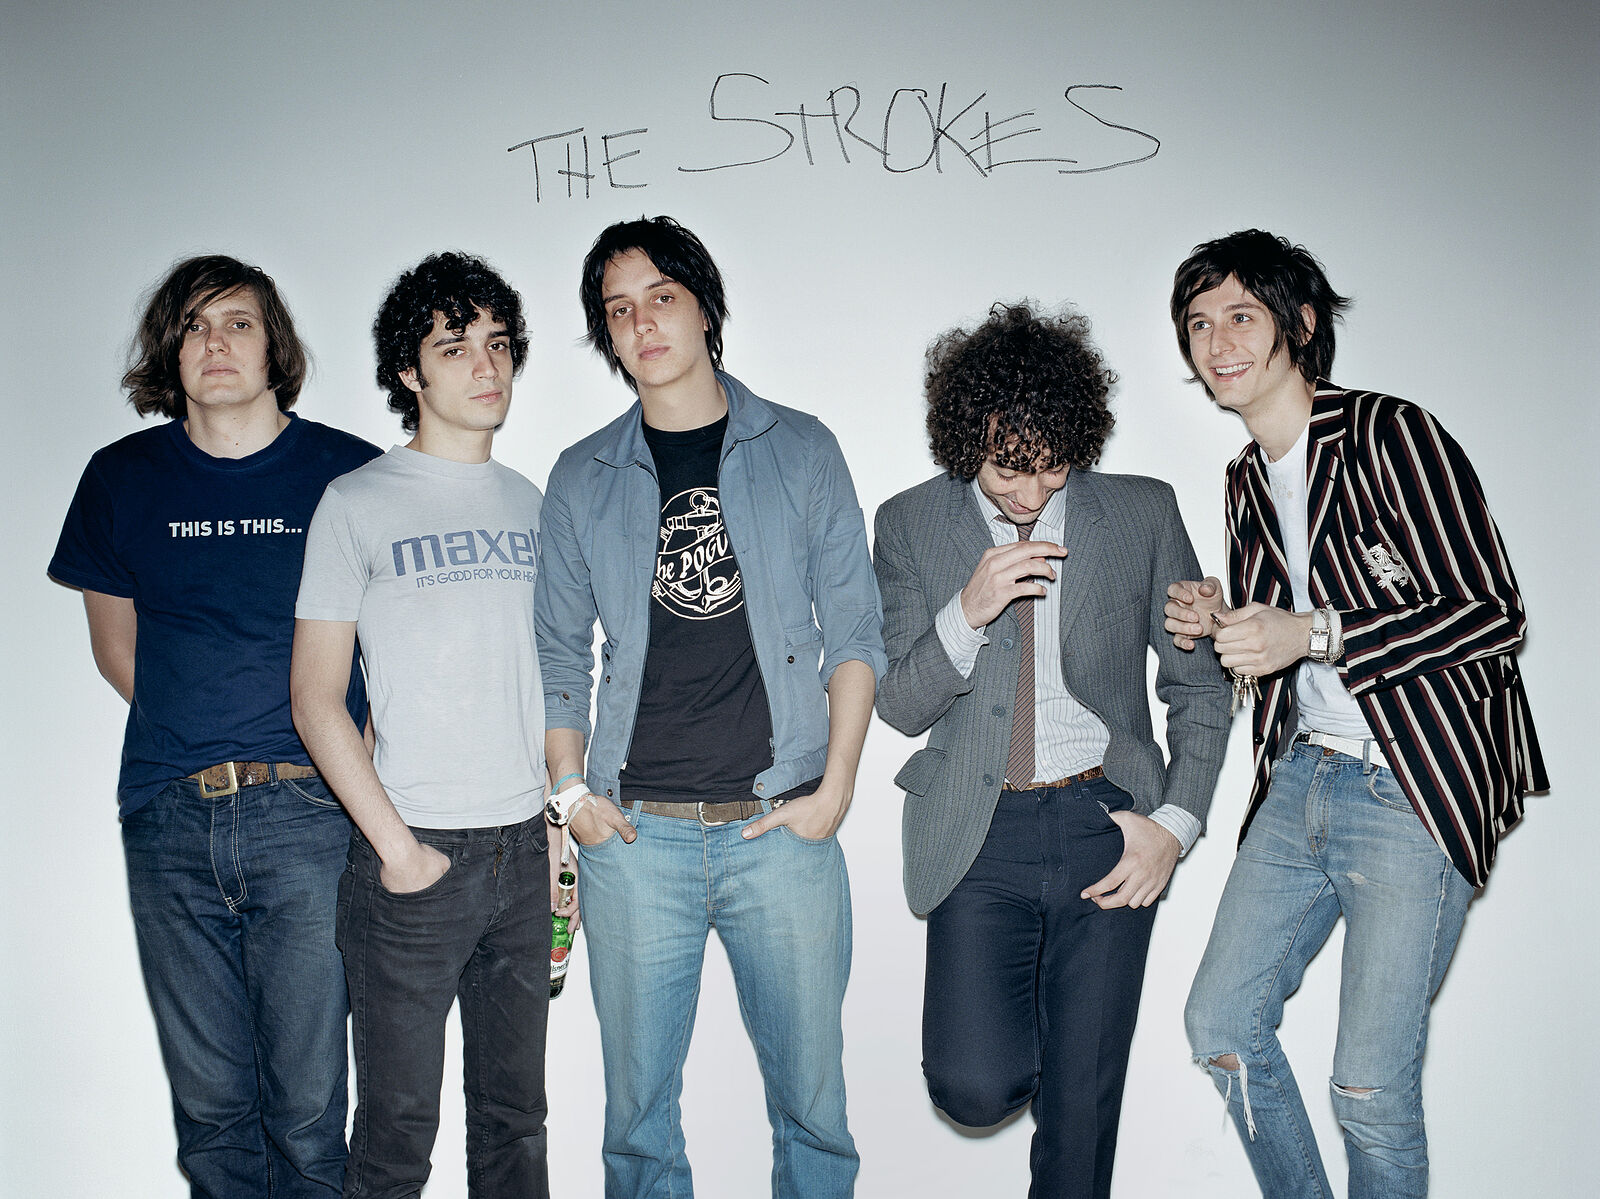 The Strokes Limited Edition Fine Art Print